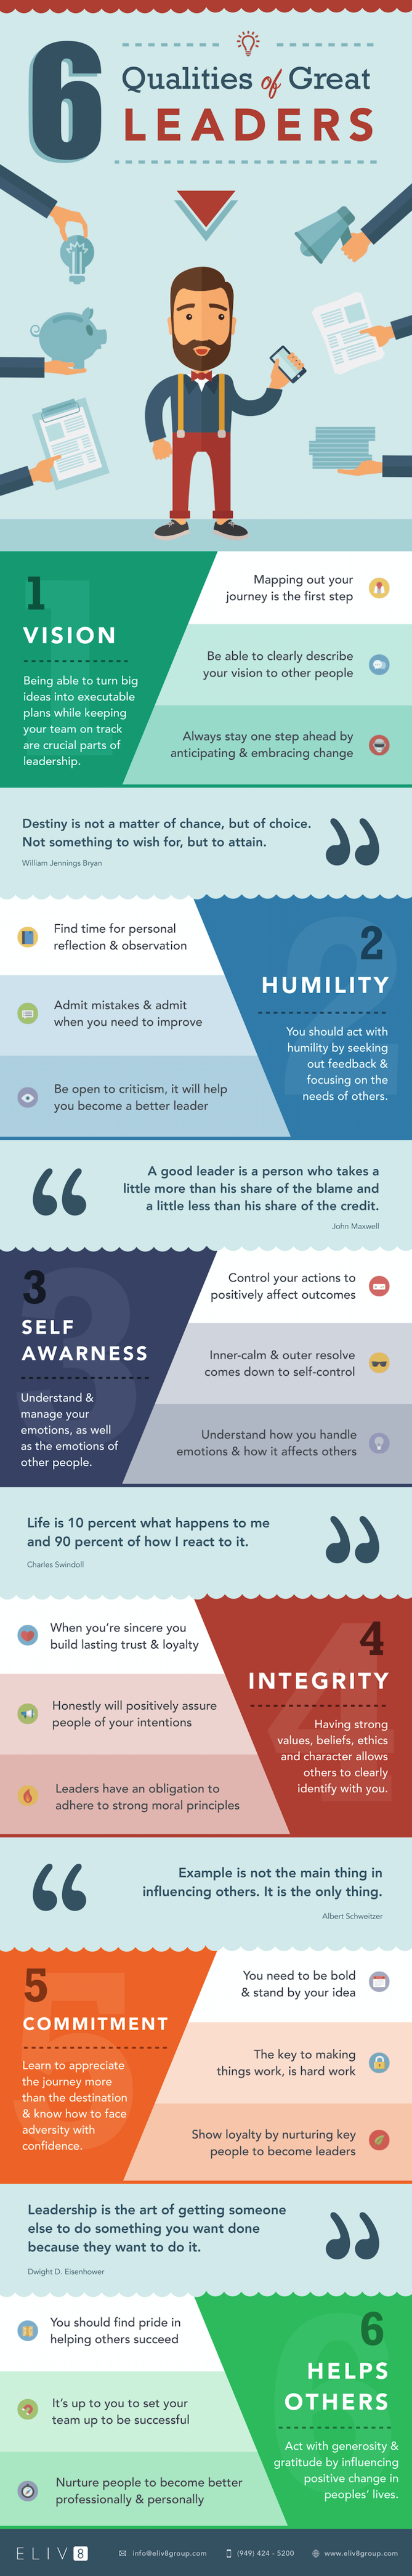 What Makes a Great Leader? 6 Defining Qualities to Strive For [Infographic]